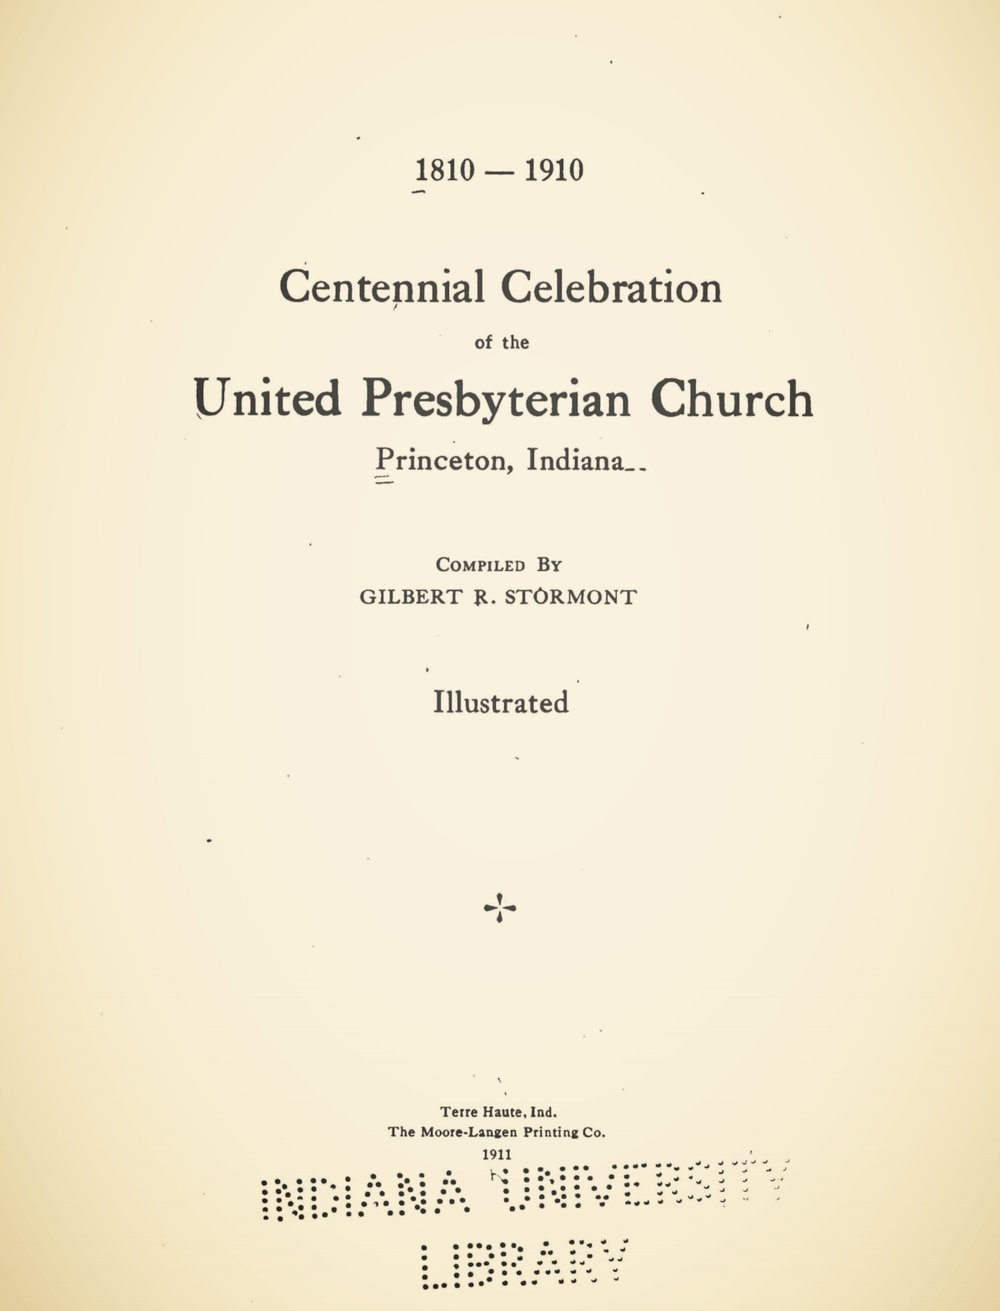 Stormont, Gilbert Robert, Centennial Celebration of the United Presbyterian Church, Princeton, Indiana Title Page.jpg